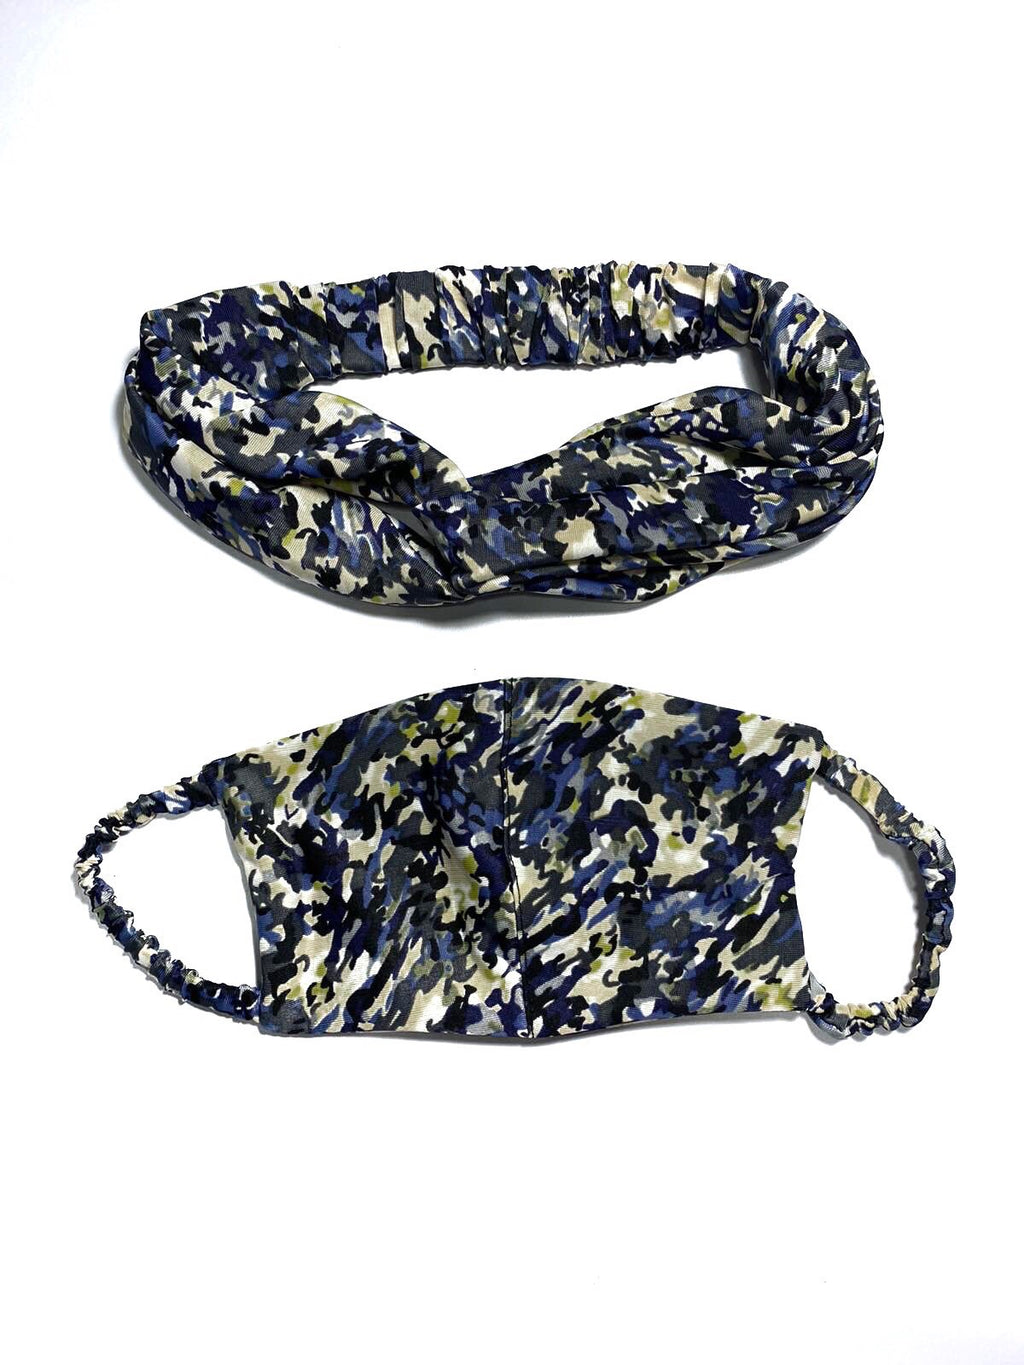 REUSABLE HEADBAND AND FACE MASK- BLUE